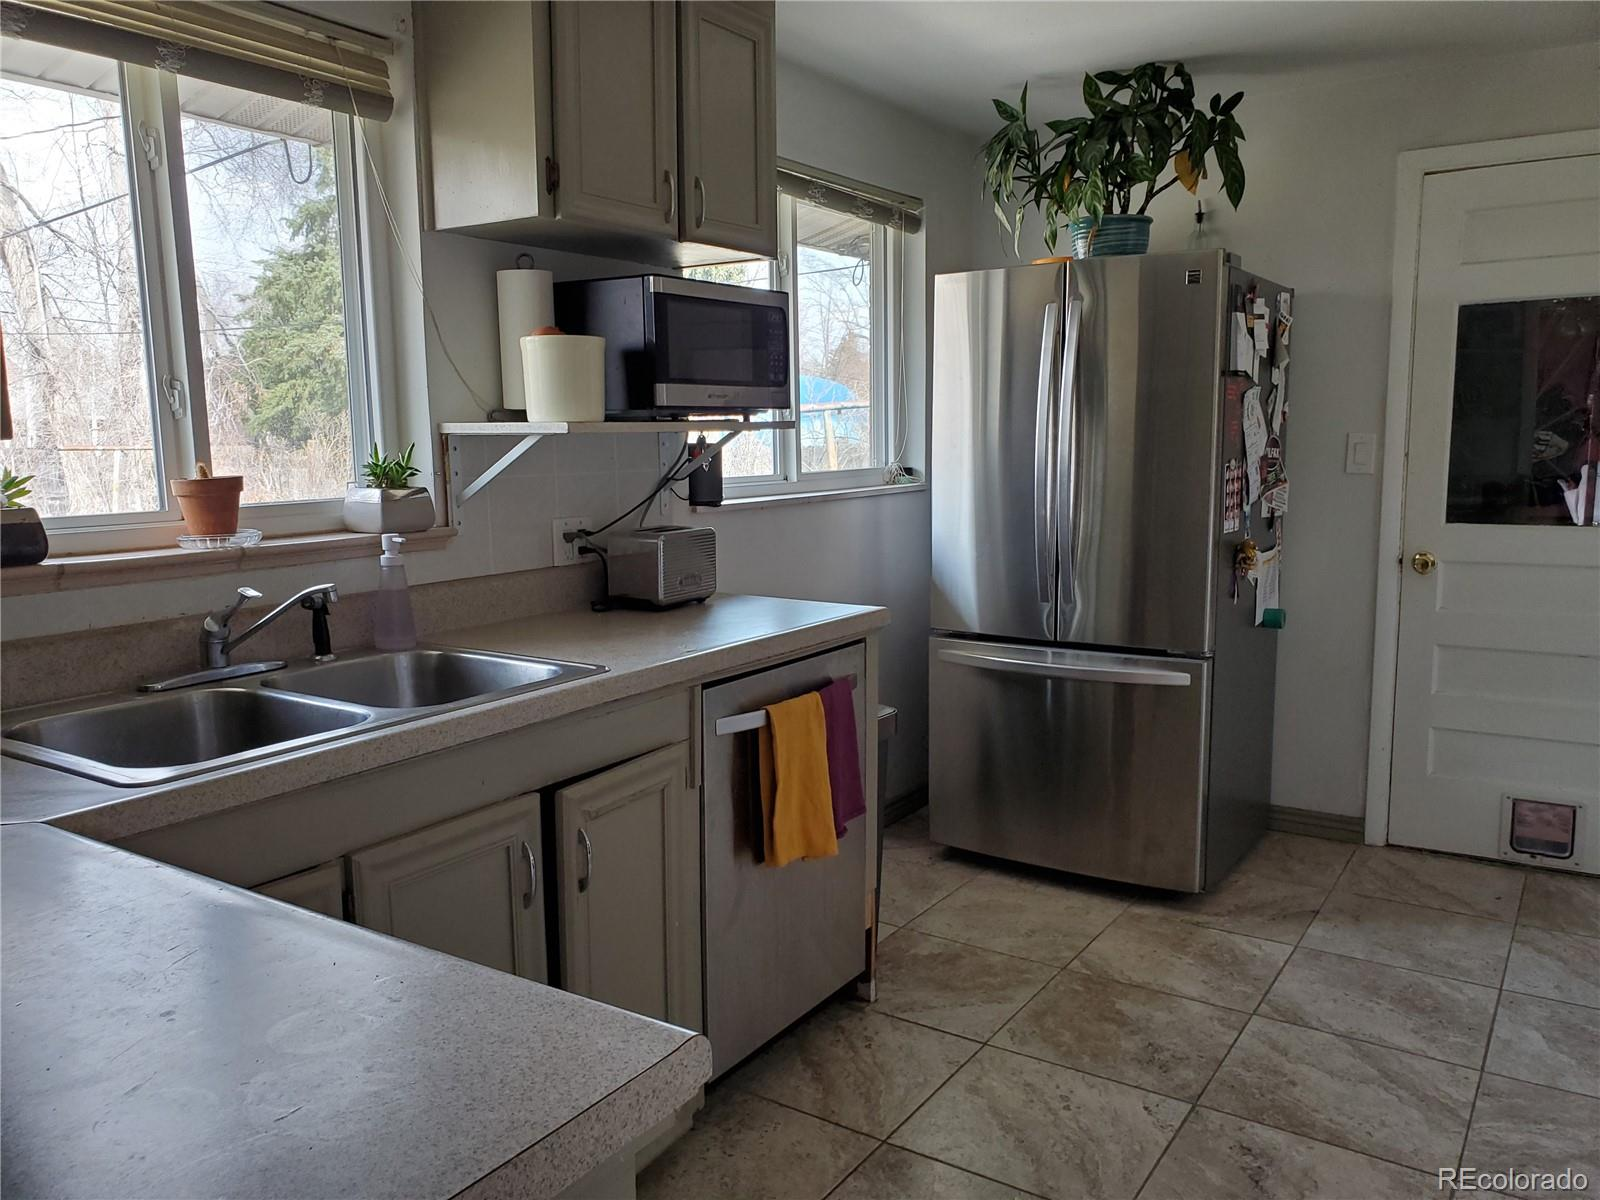 MLS# 5584211 - 13 - 8105 W 16th Place, Lakewood, CO 80214